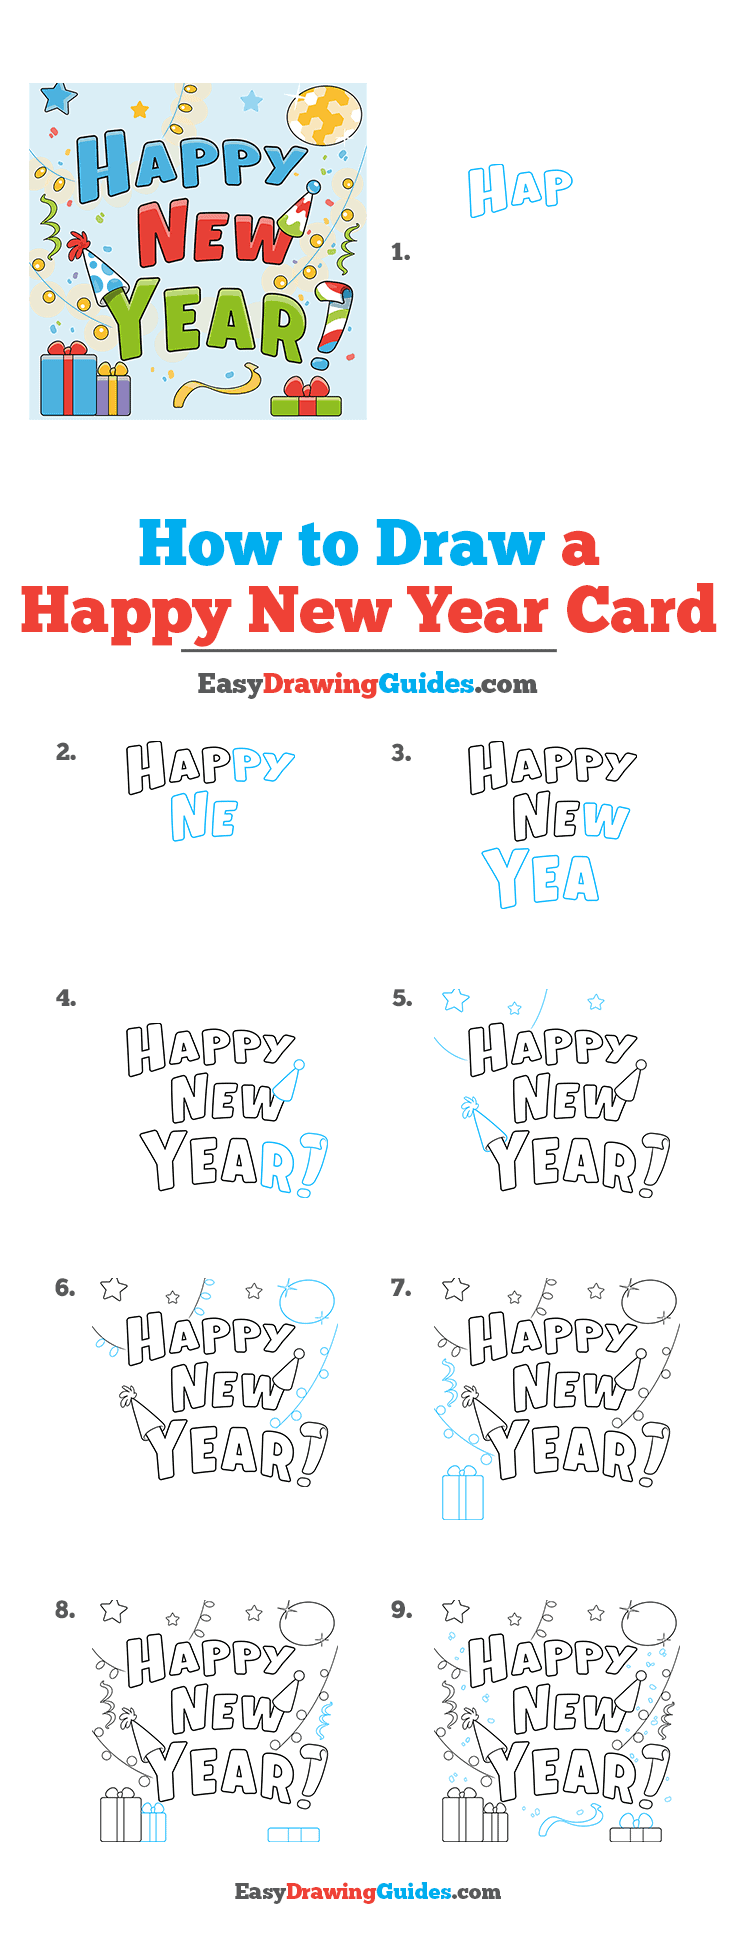 How to Draw Happy New Year Card